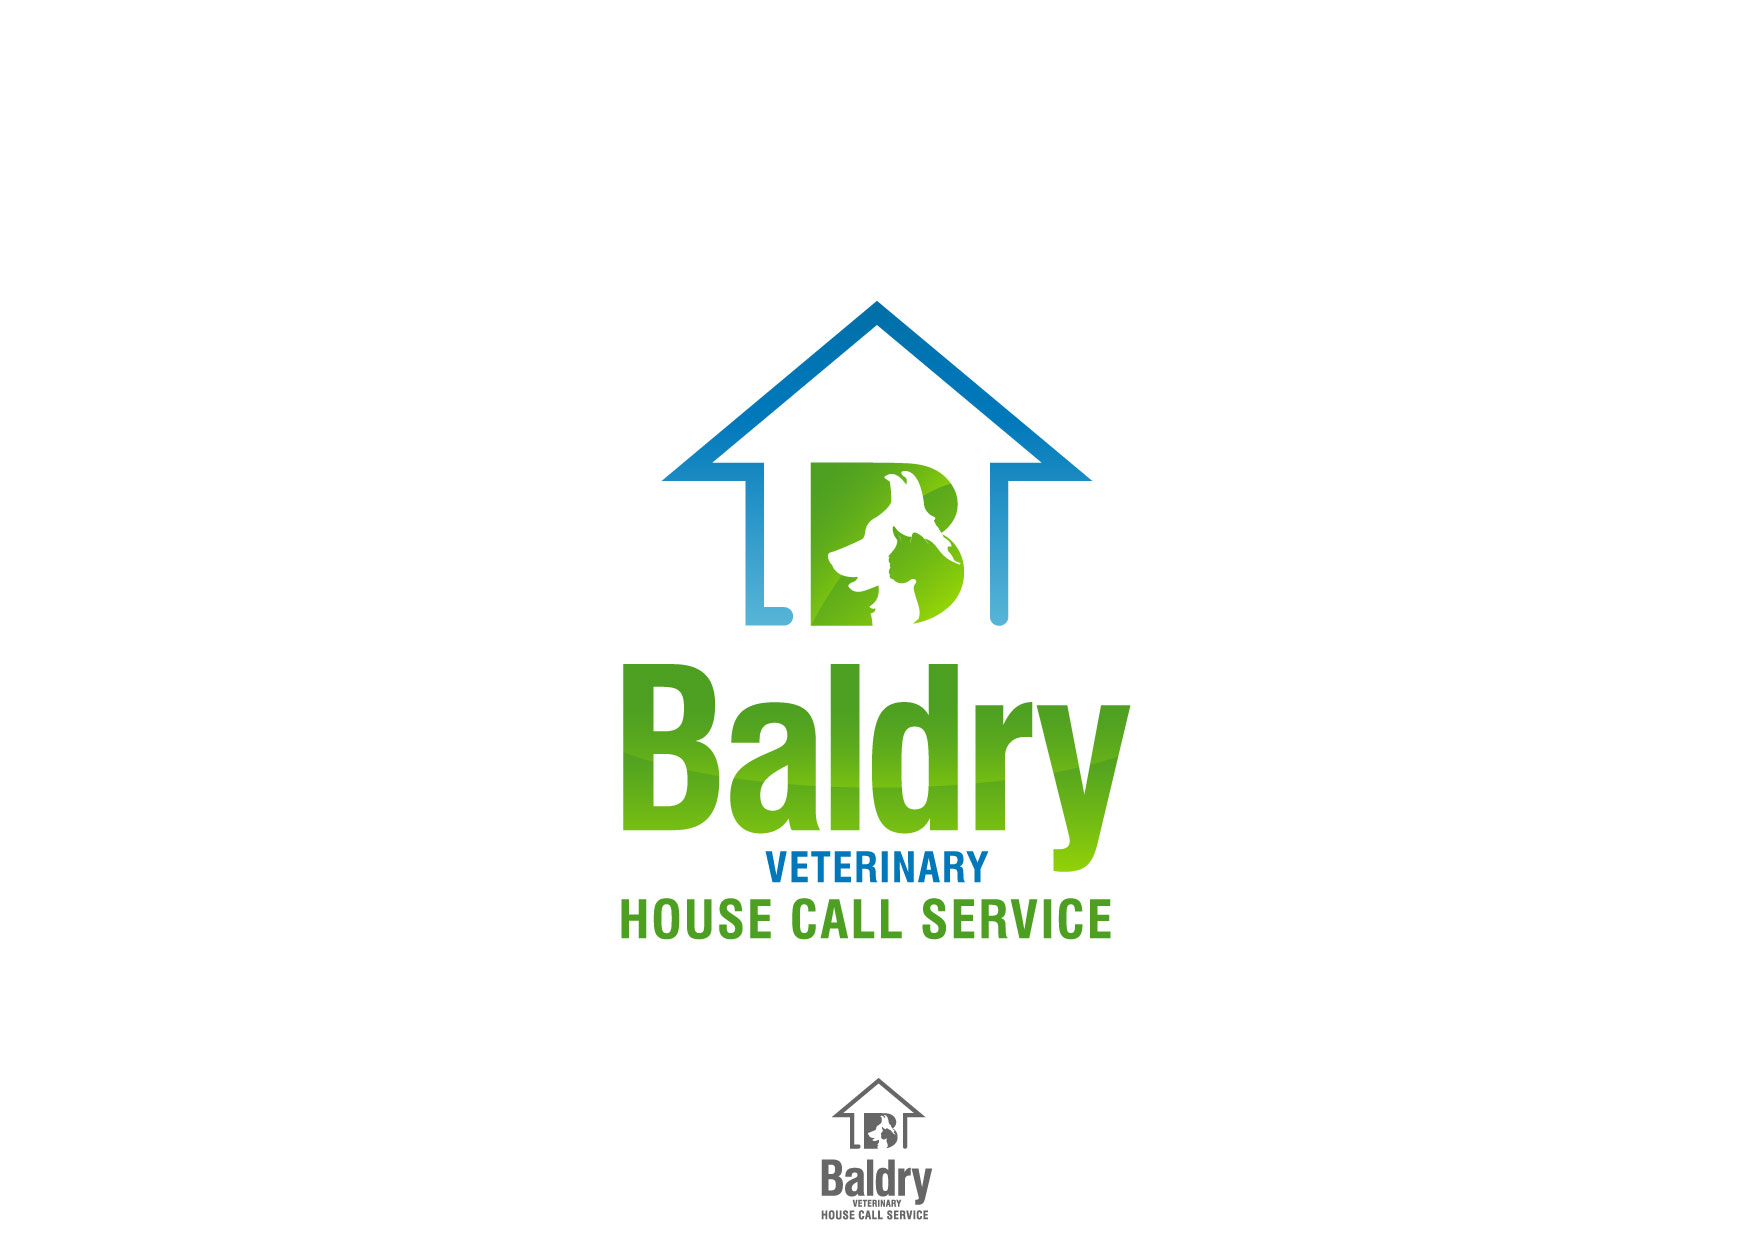 Logo Design by Nurgalih Destianto - Entry No. 129 in the Logo Design Contest Captivating Logo Design for Baldry Veterinary House Call Service.